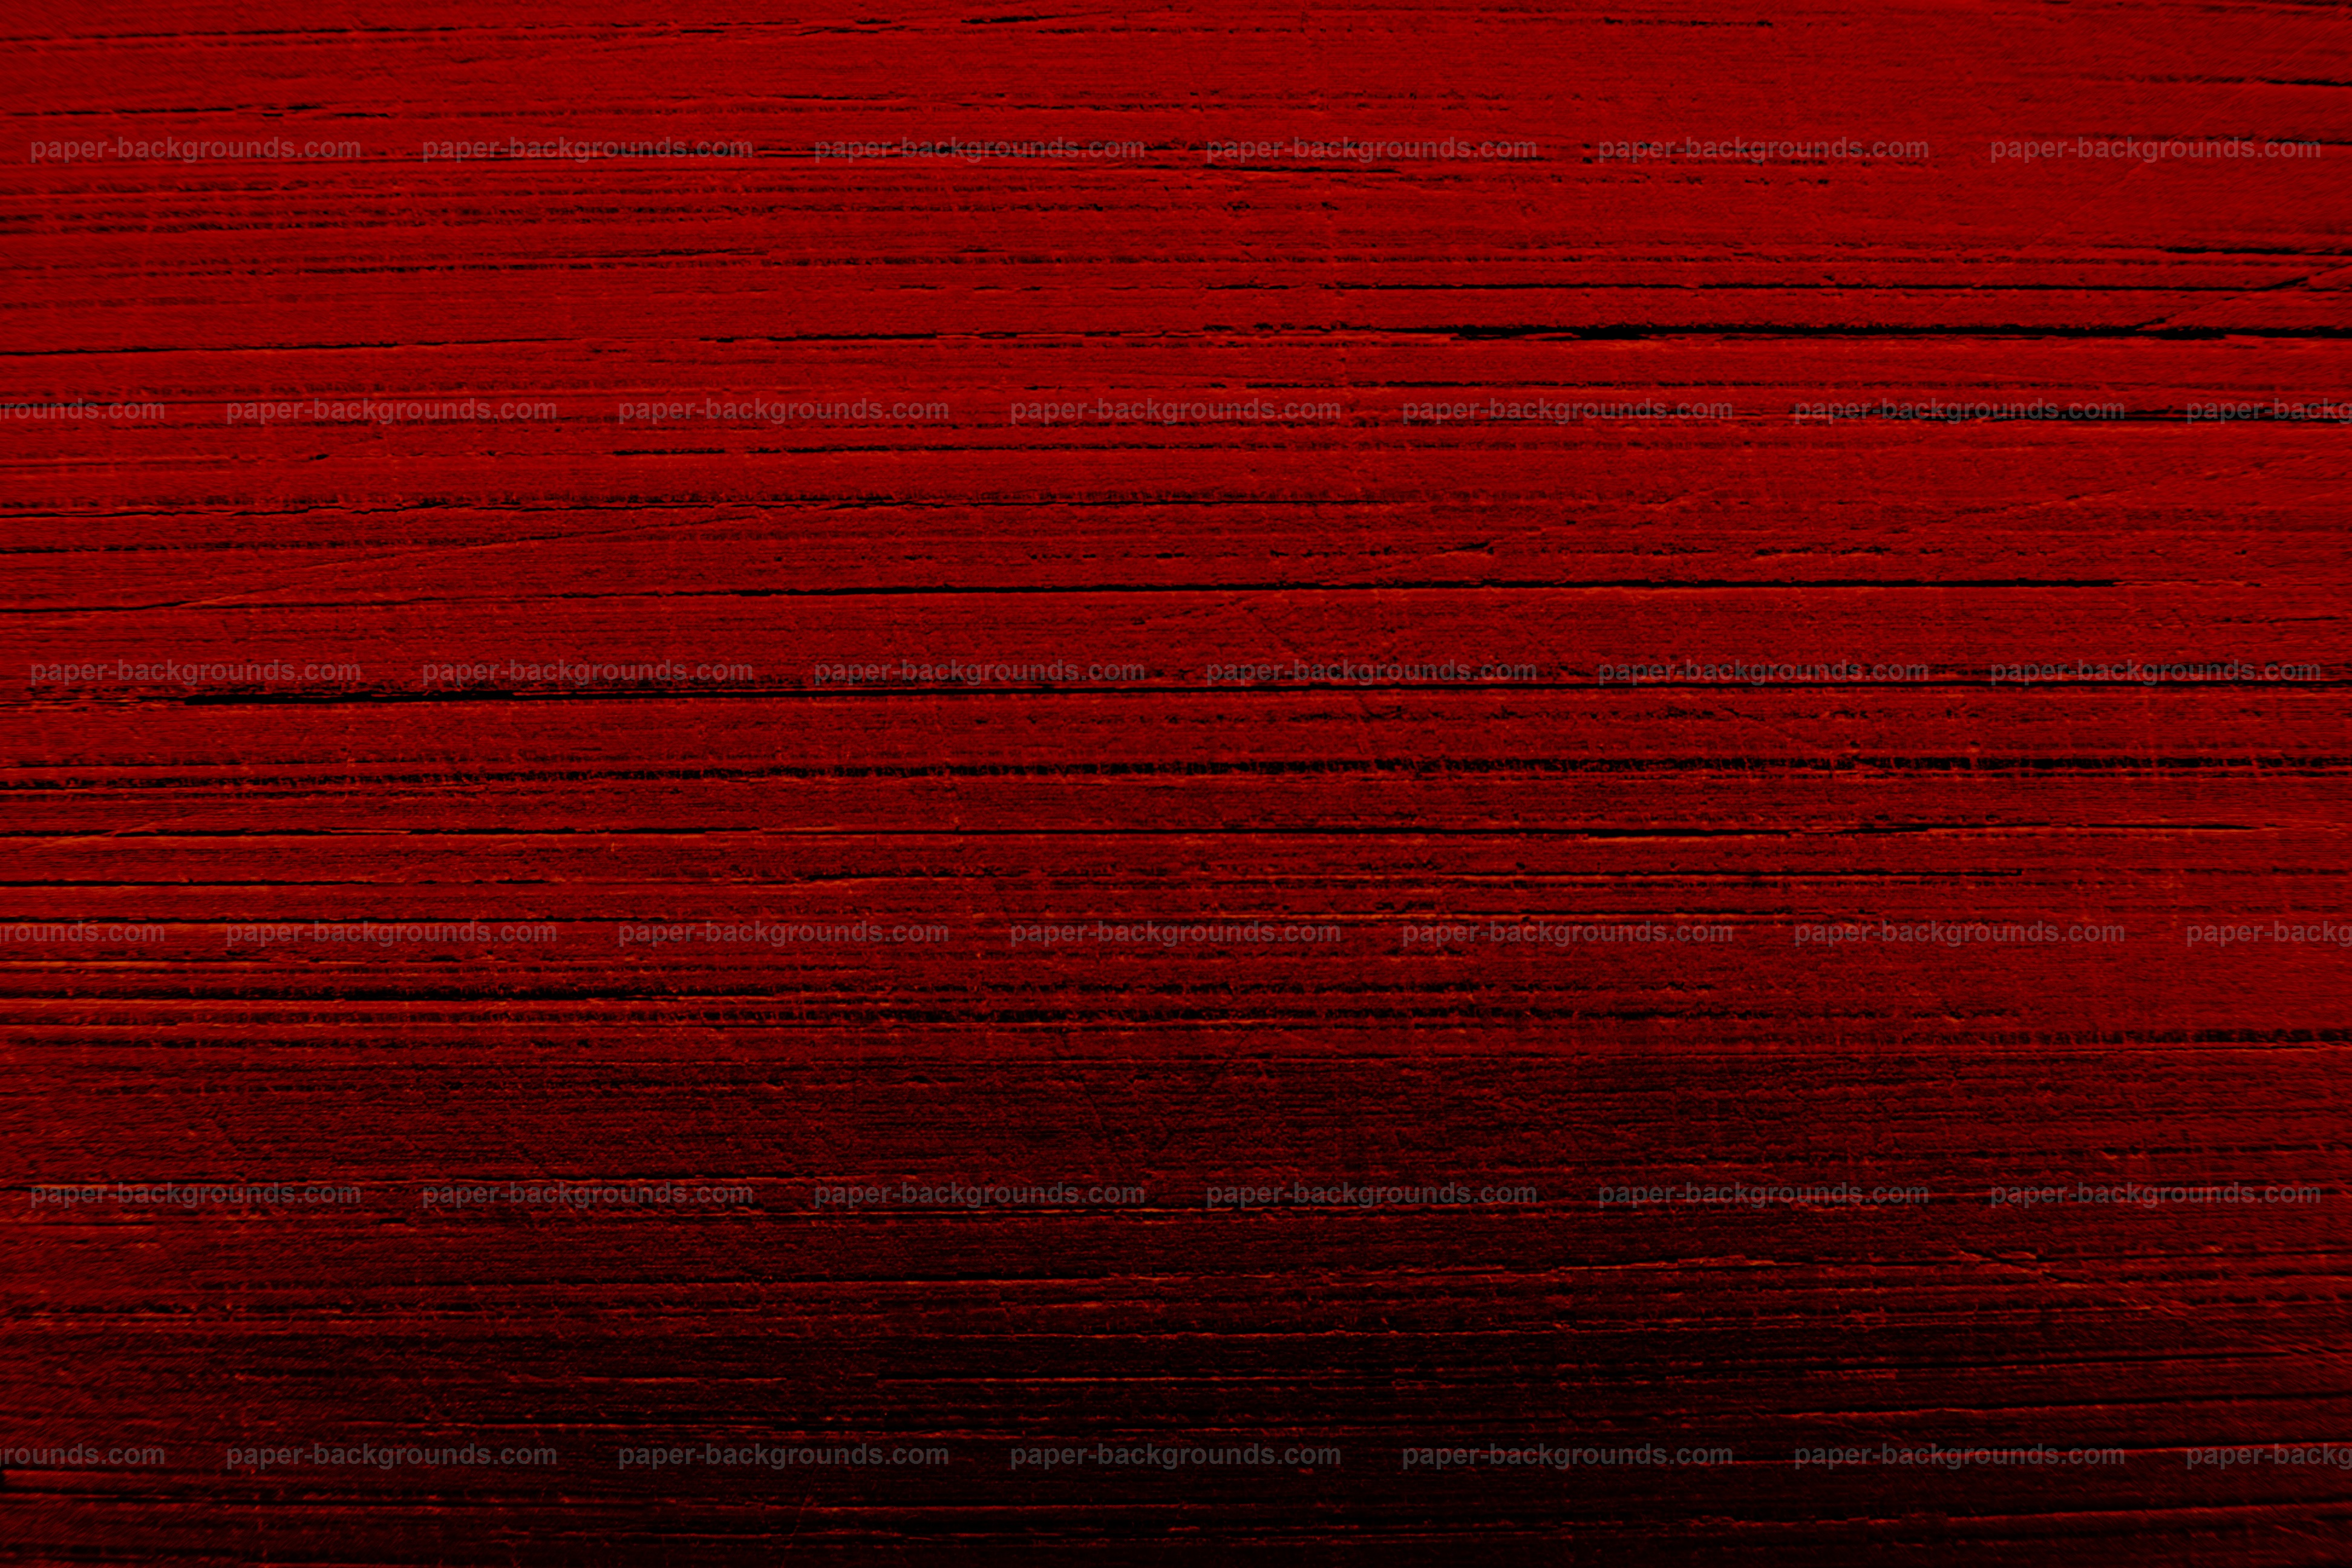 Canvas Hi Beautiful 3d Wallpaper Paper Backgrounds Dramatic Red Wood Texture